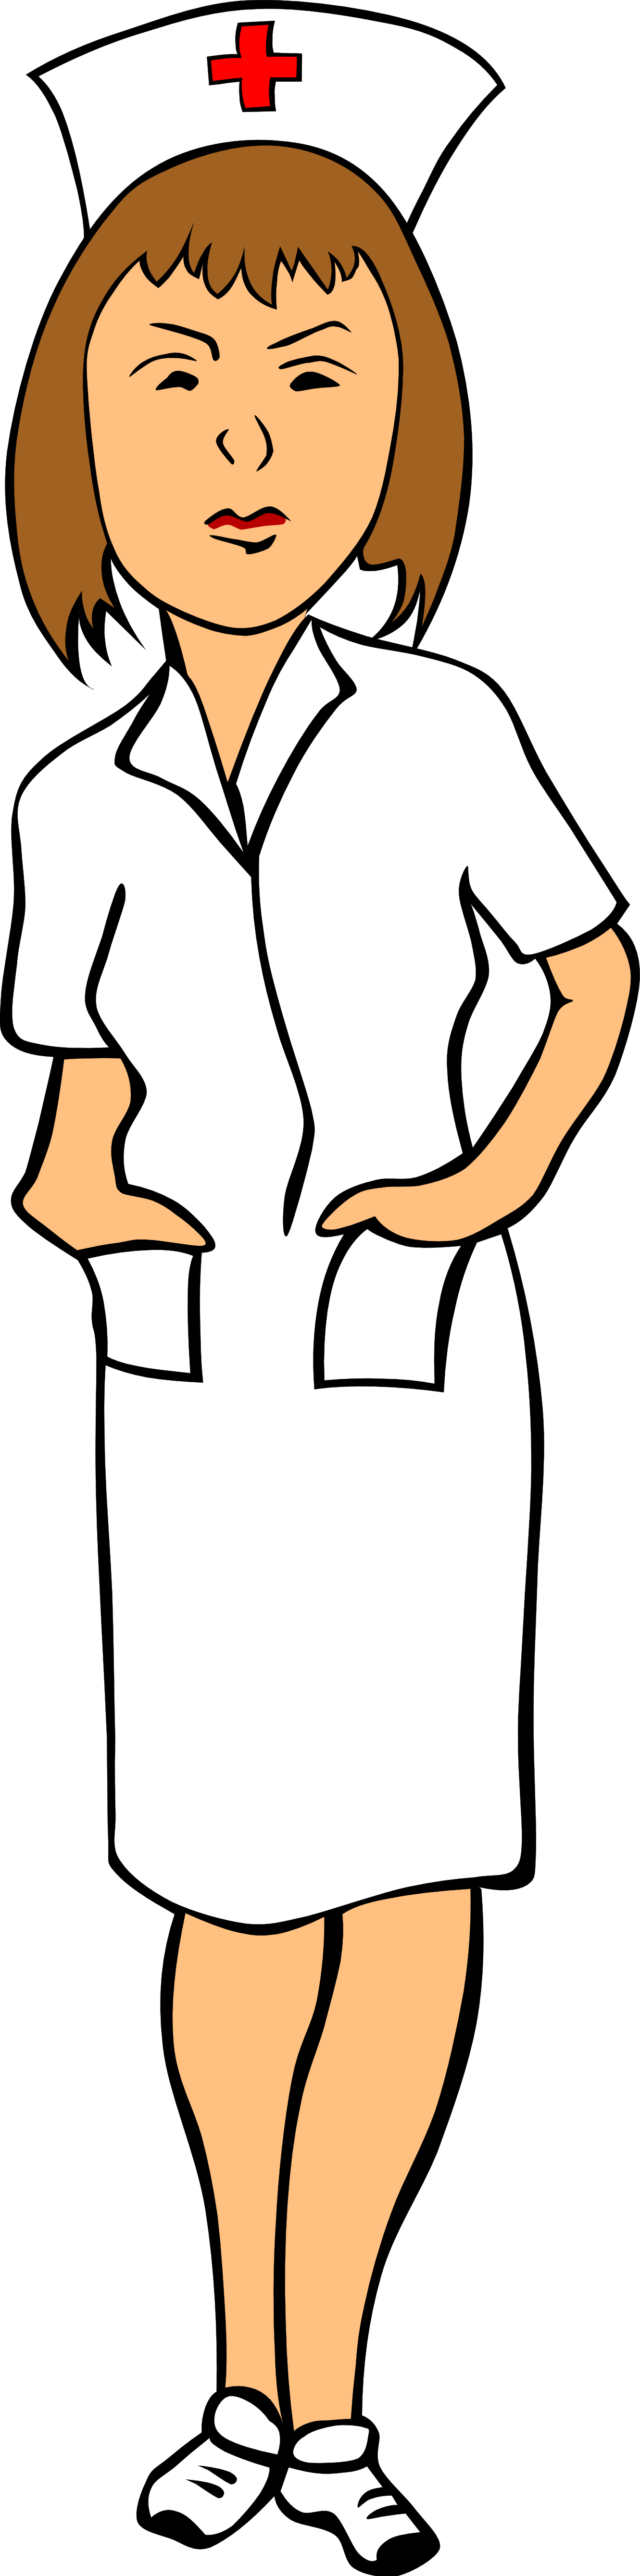 School nurse clipart black and white picture royalty free library Nurse Clip Art Black And White | Clipart Panda - Free Clipart Images picture royalty free library